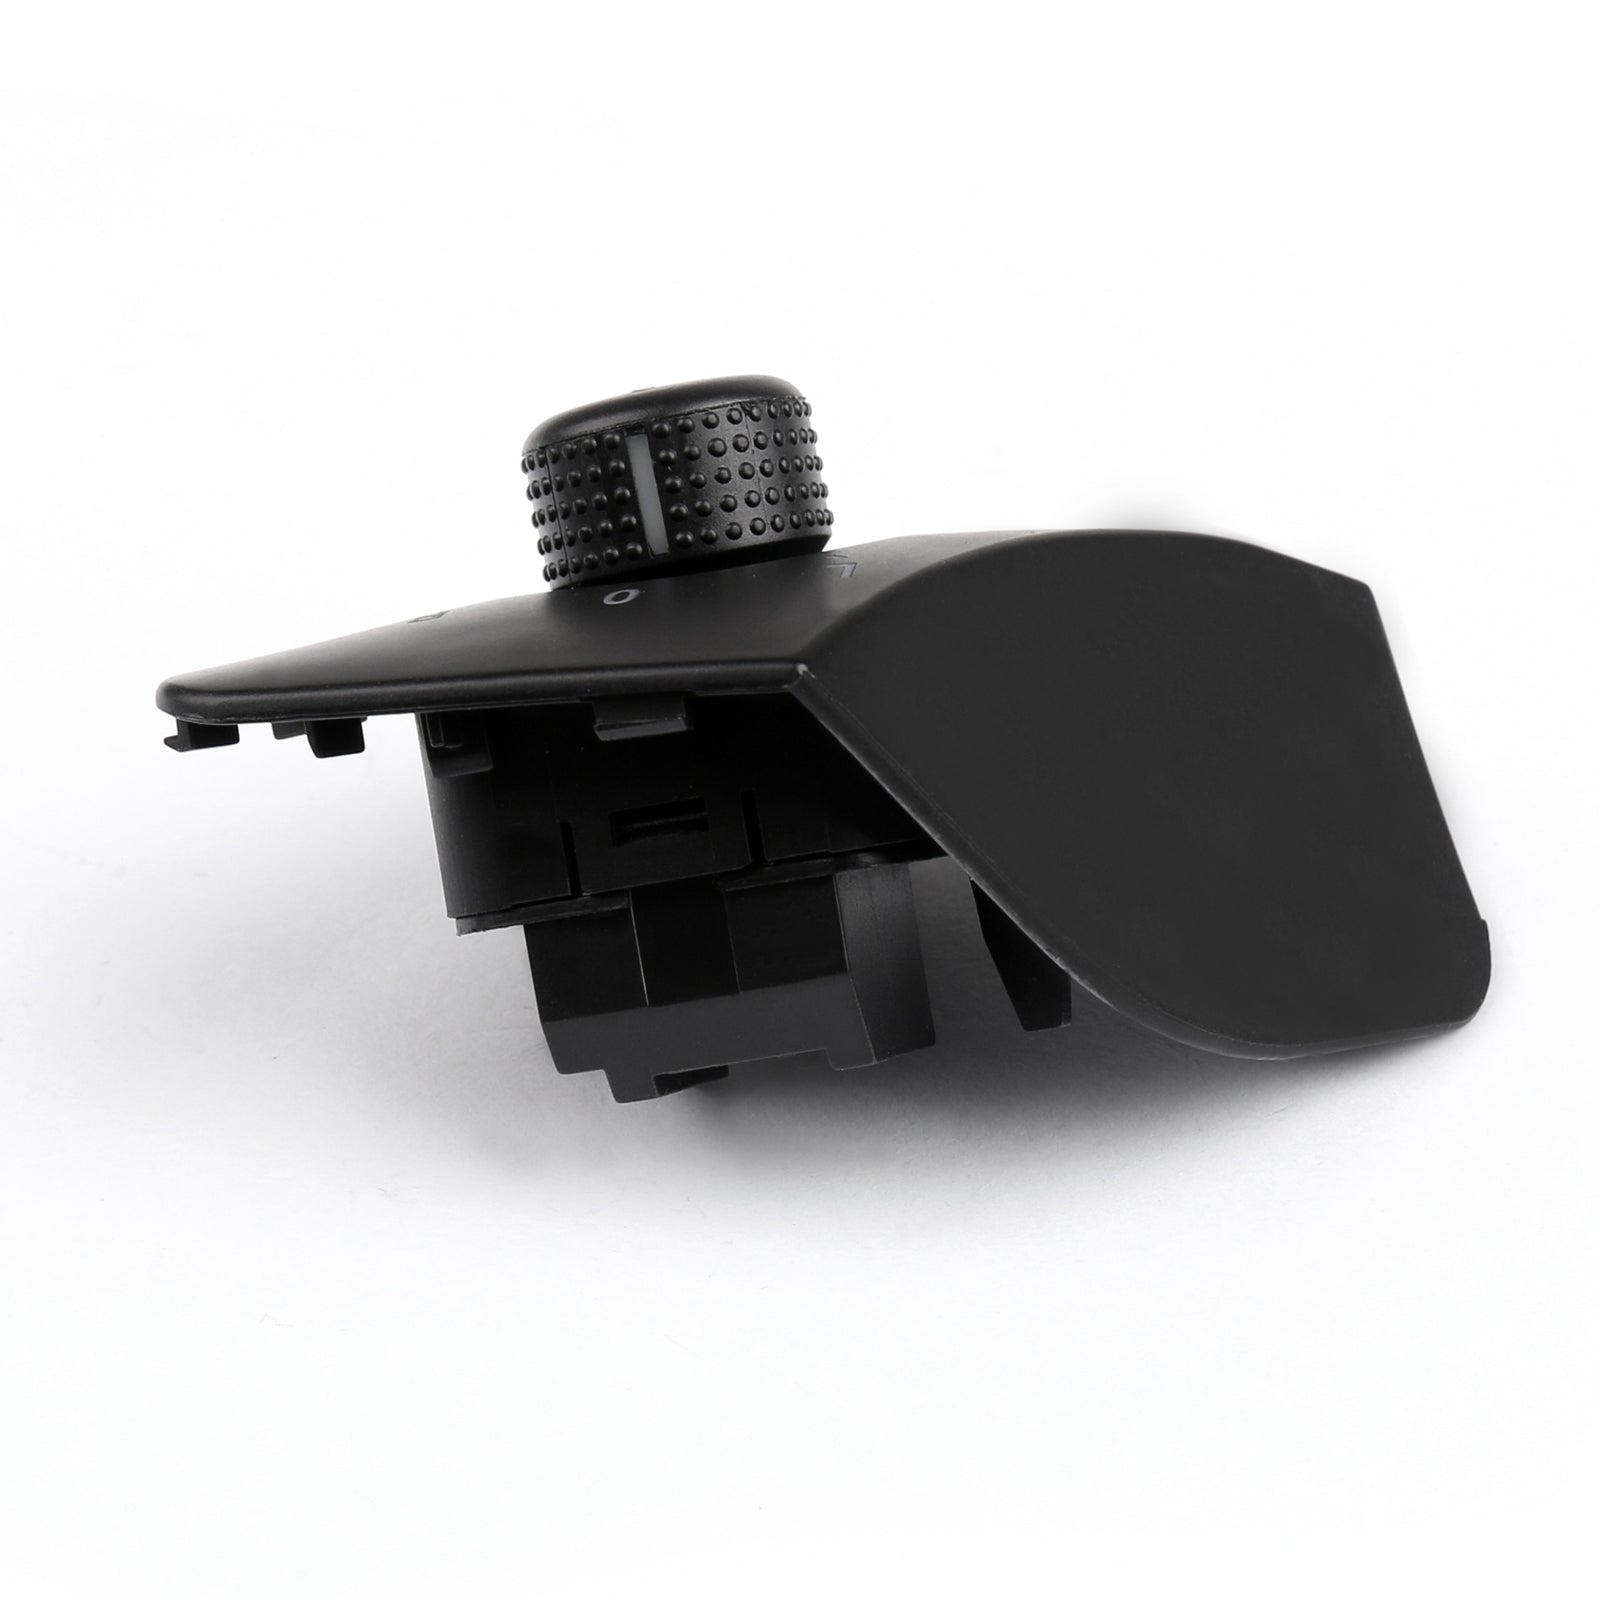 New For Seat Ibiza 2009-15 6J1 959 565 Exterior Side ...